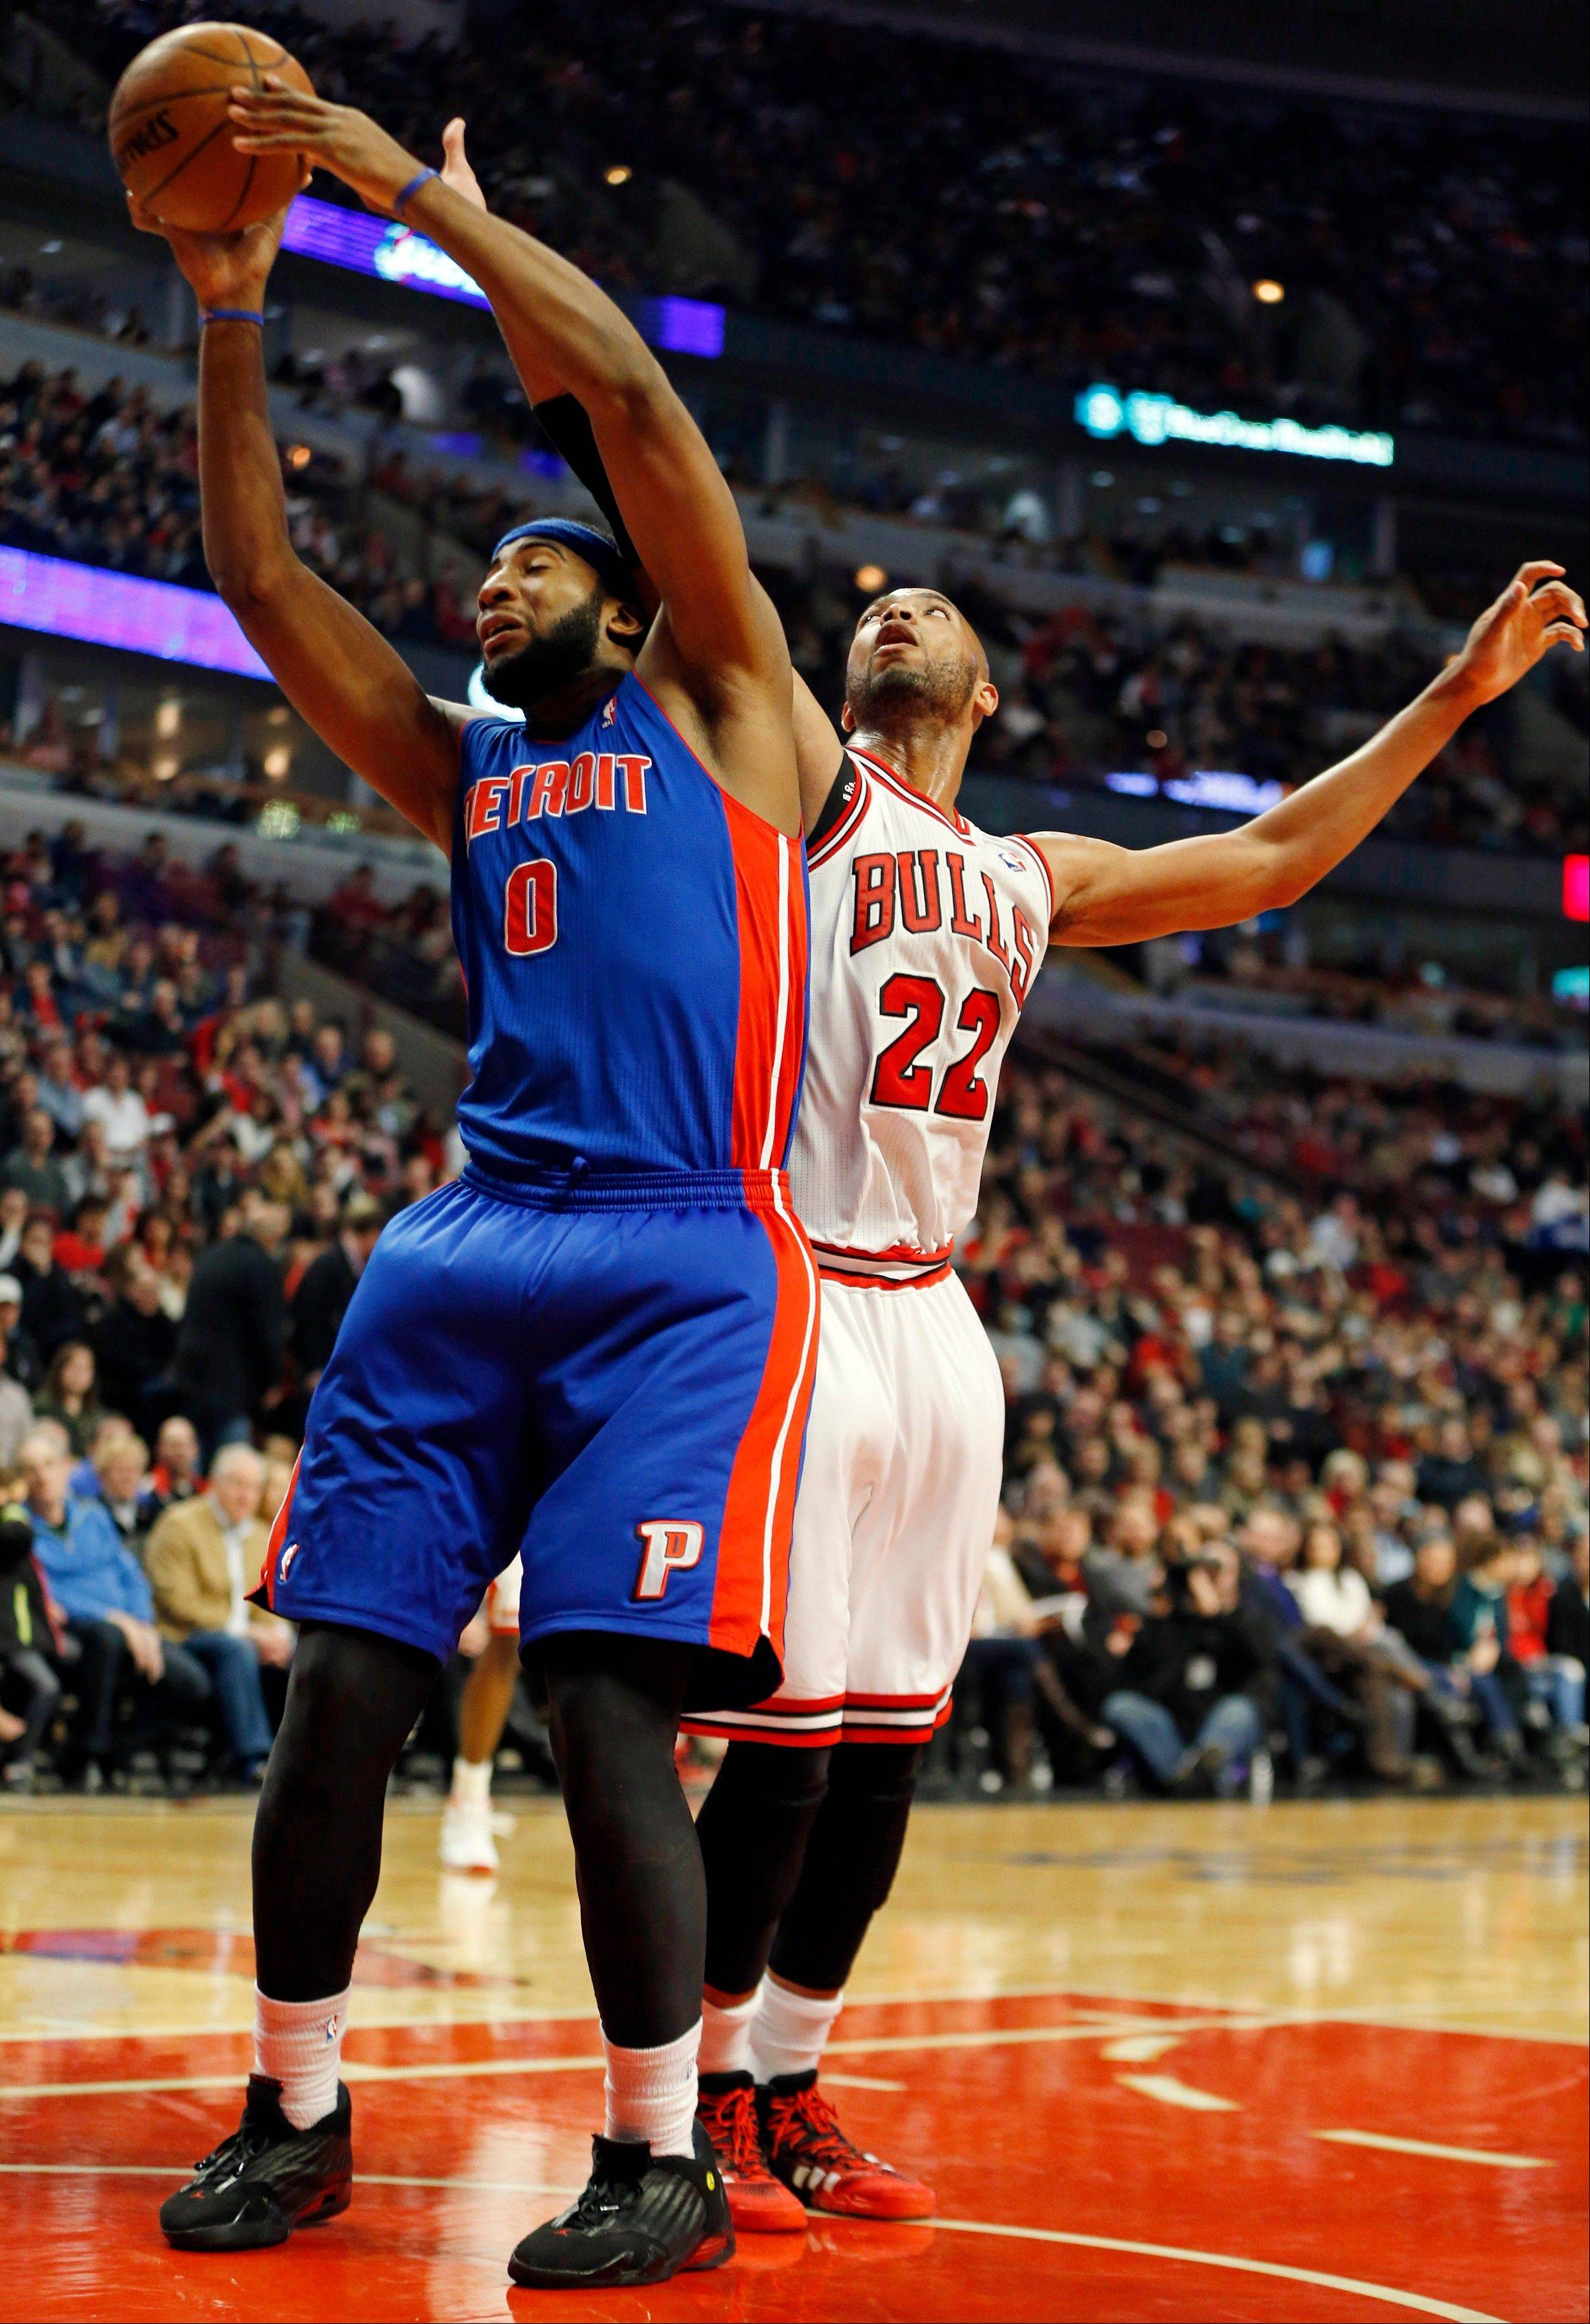 The Bulls' Taj Gibson puts some defensive pressure on Andre Drummond of the Pistons on Saturday at the United Center.